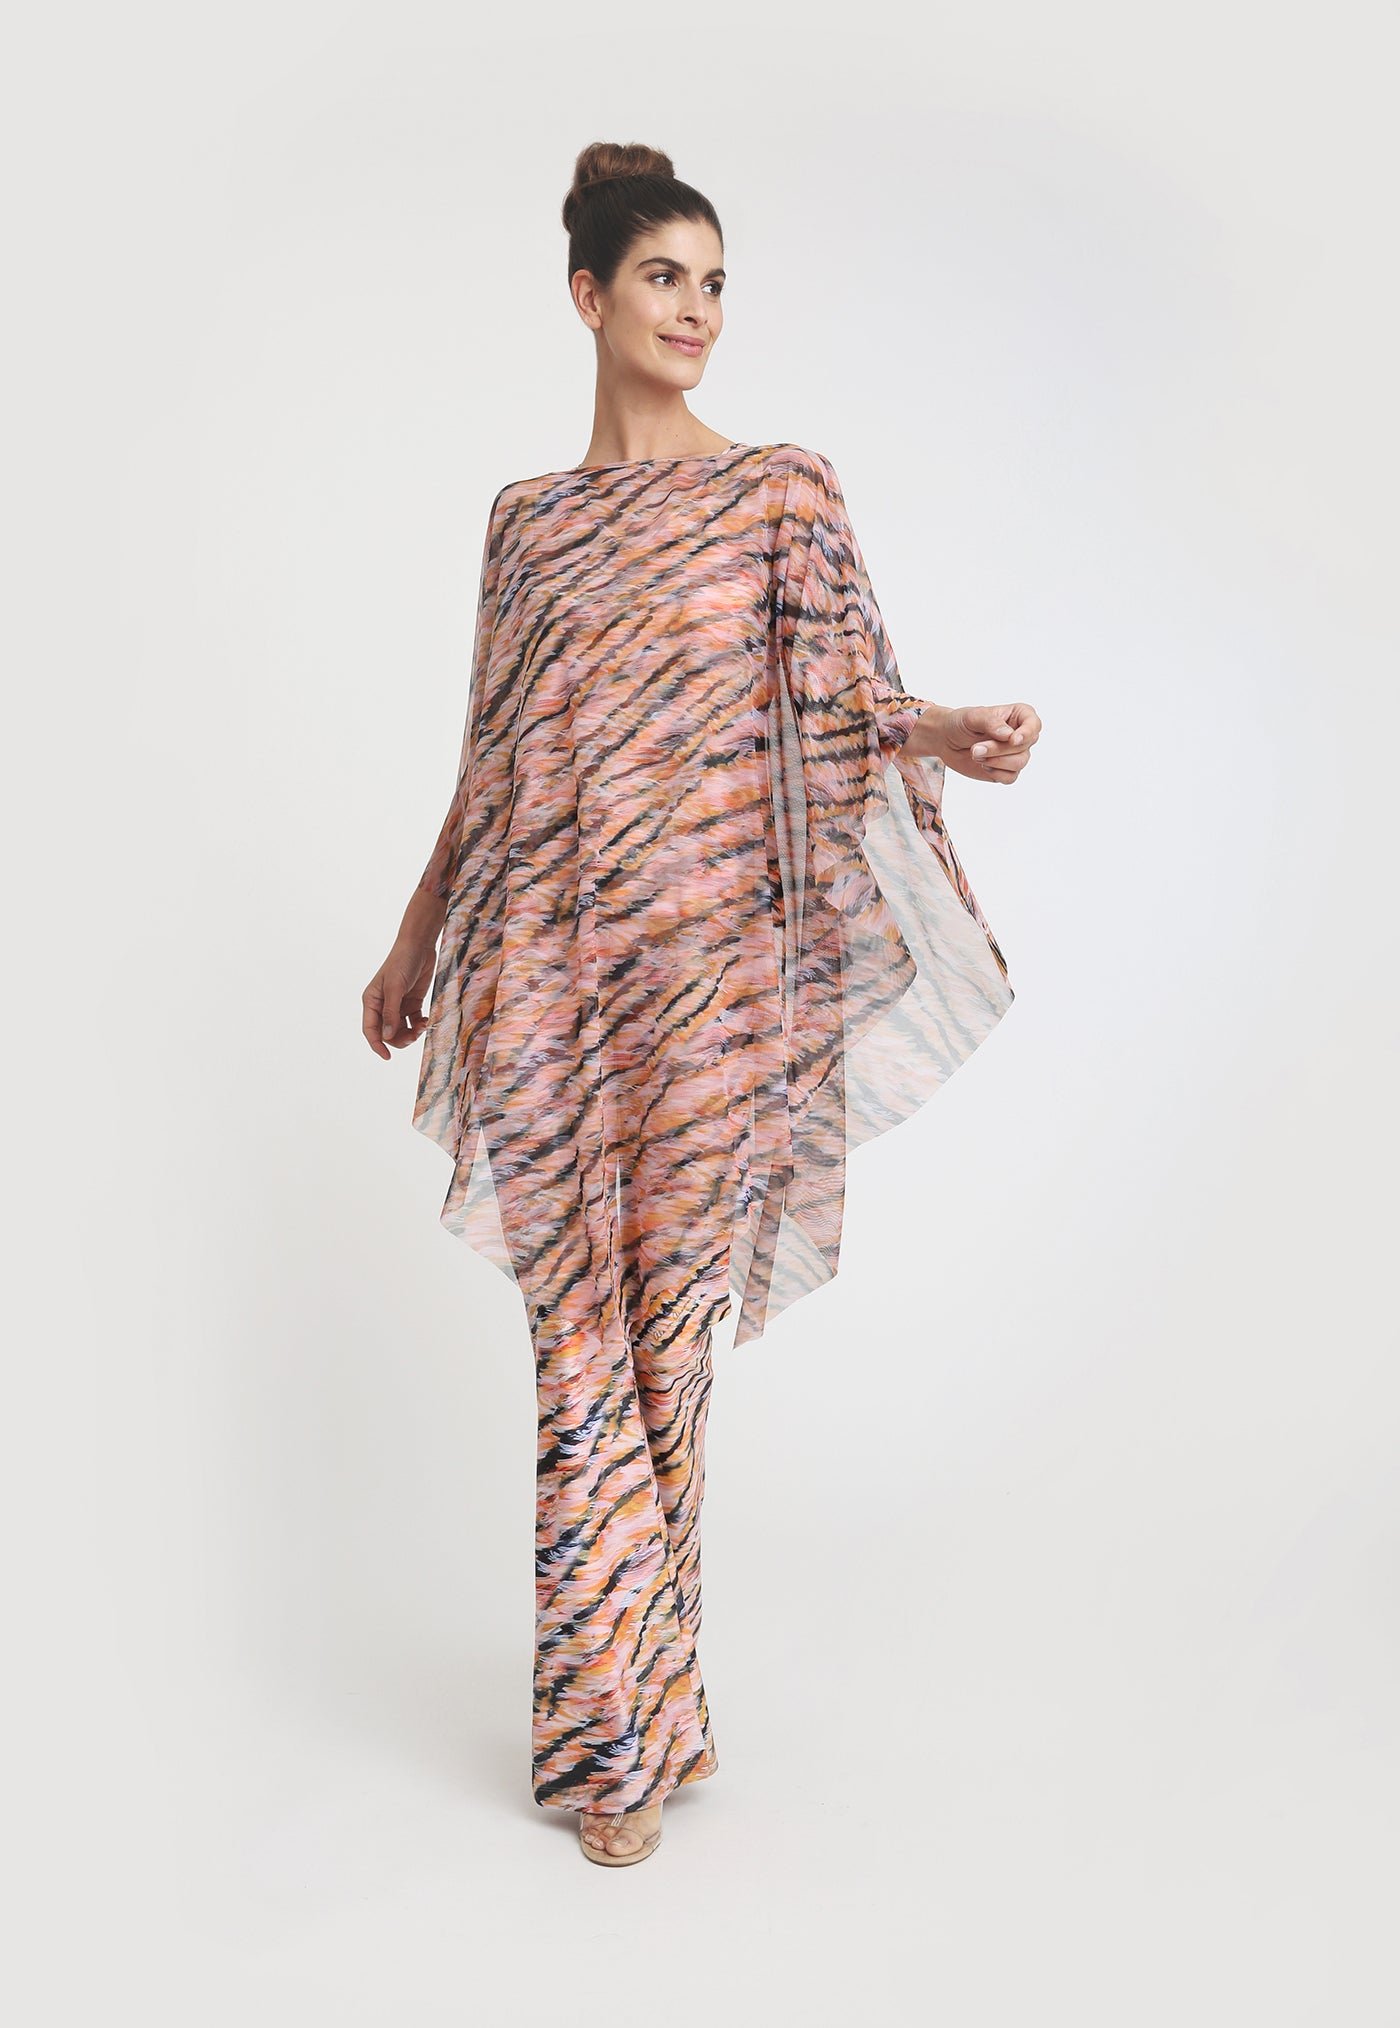 Model in triangle cut mesh poncho with pink and black tiger print, over matching tank top and pant